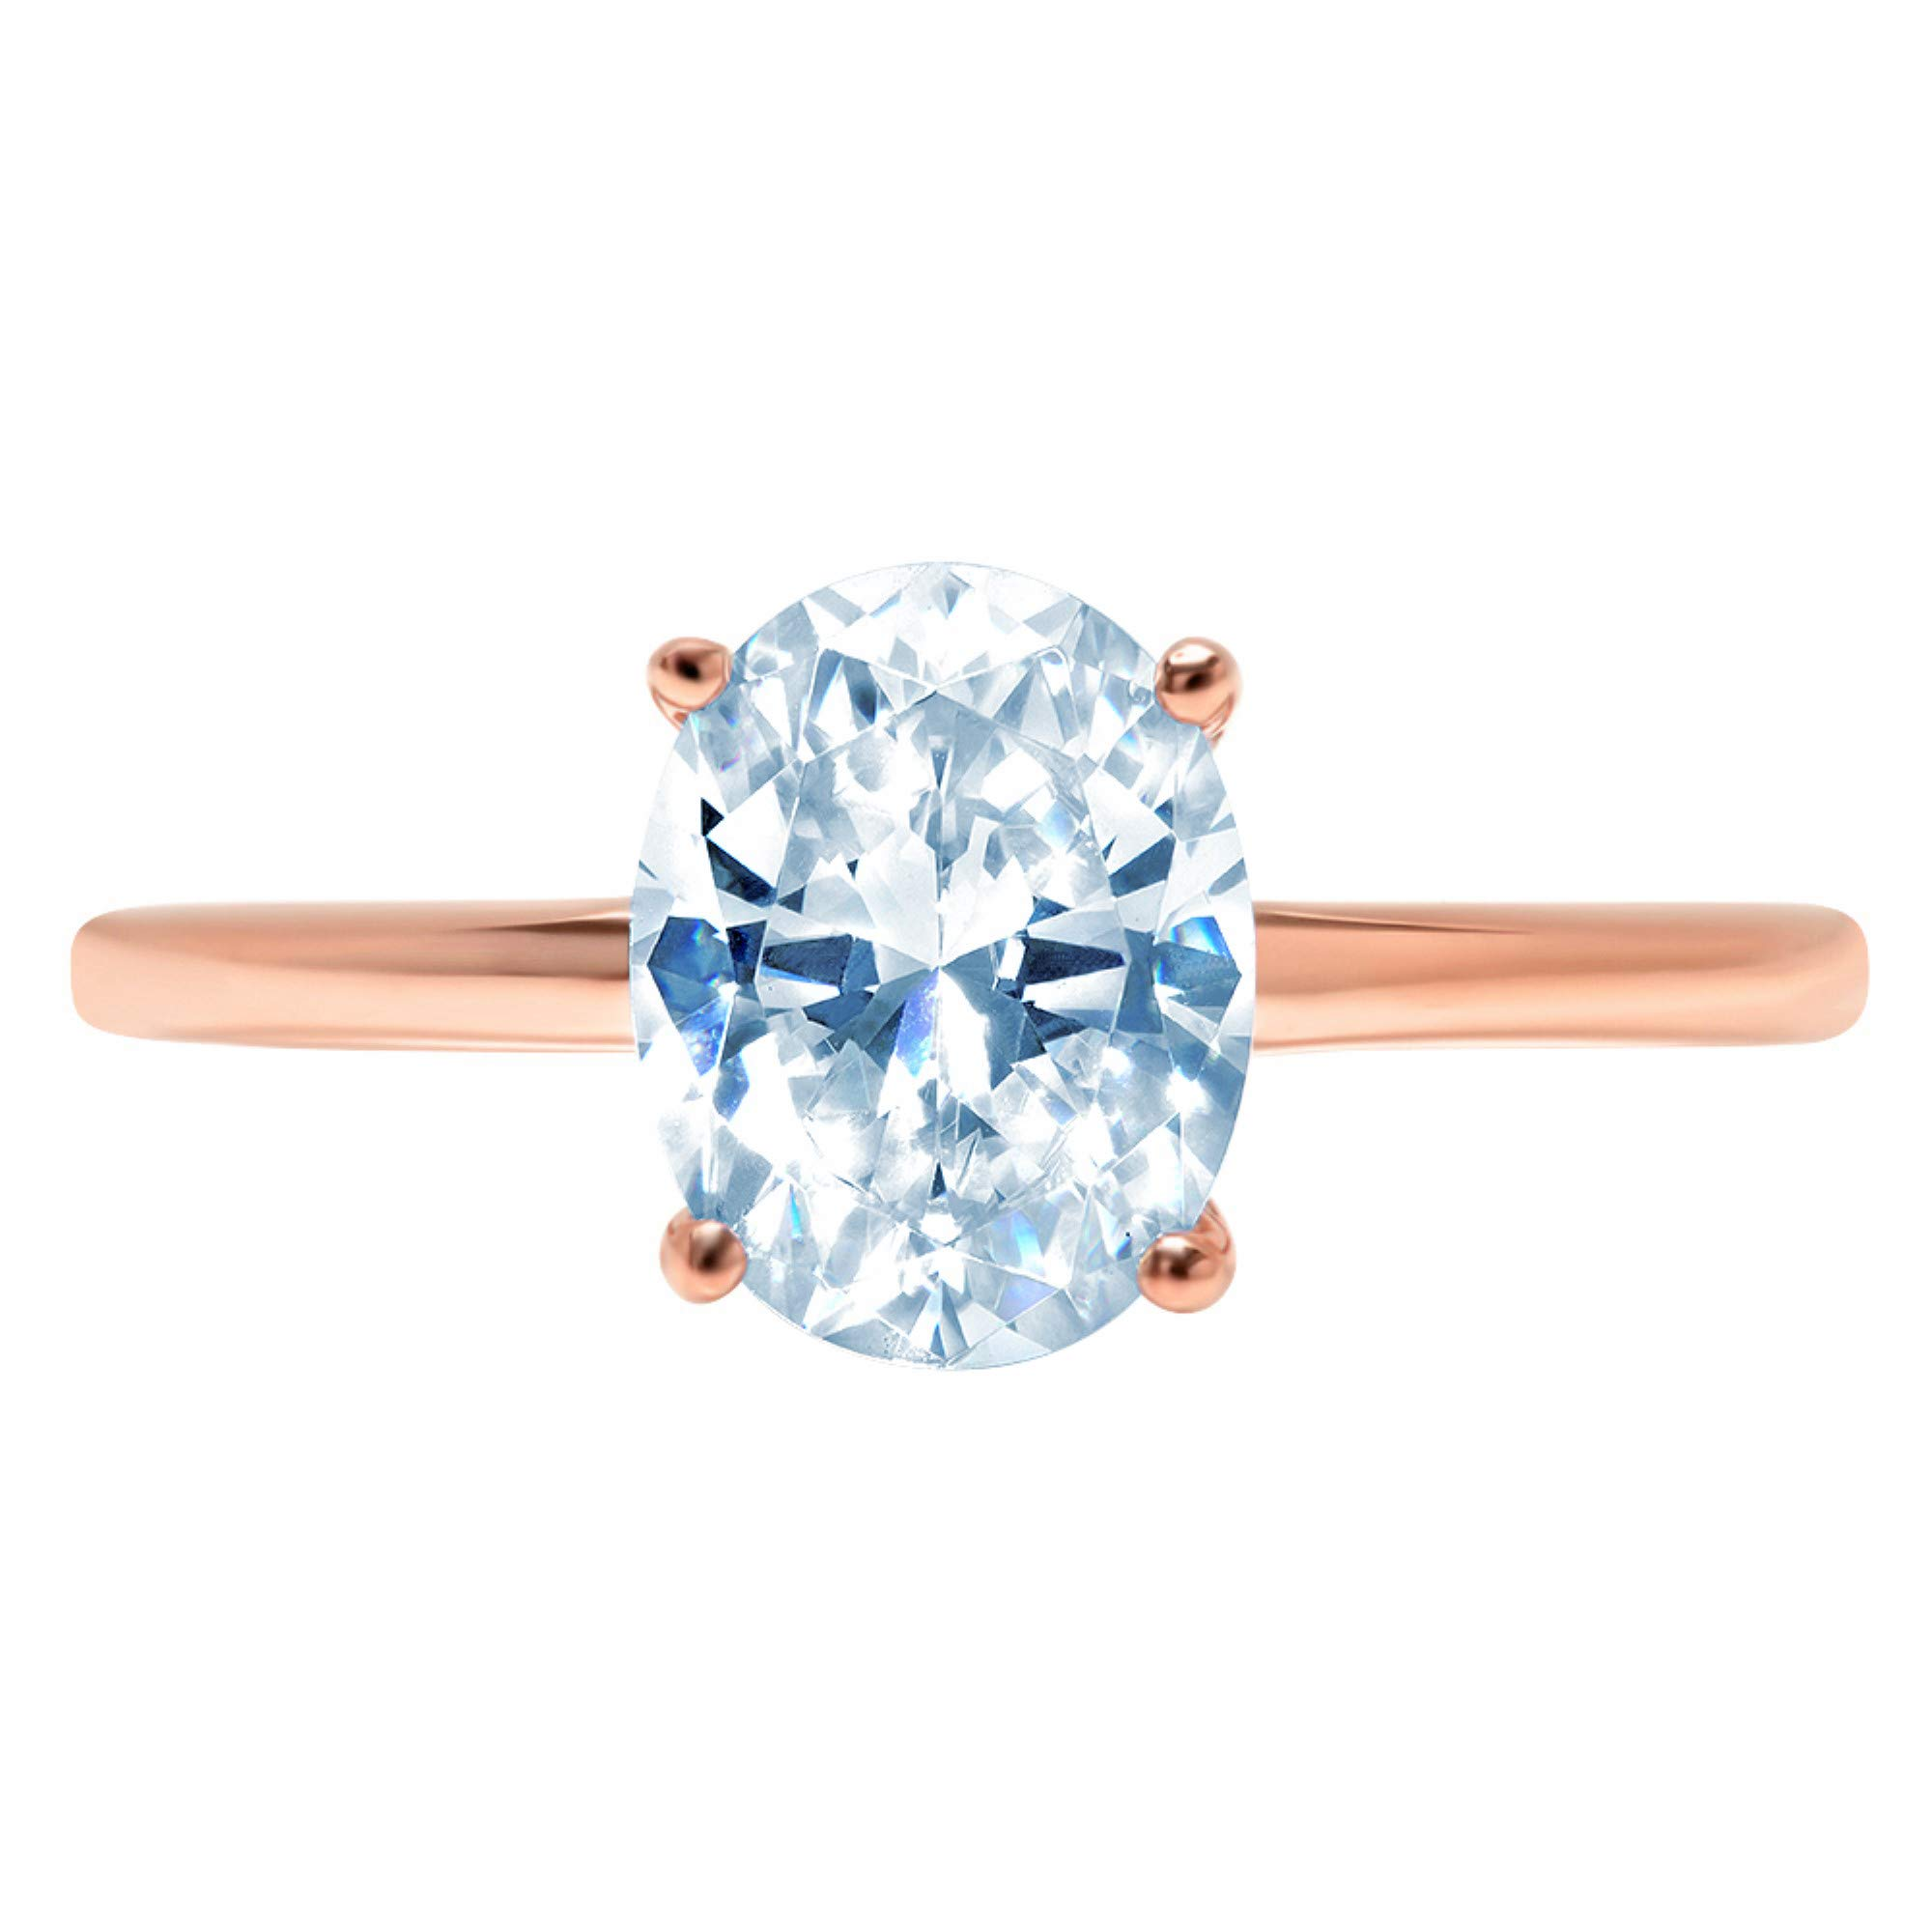 1.95ct Brilliant Oval Cut Solitaire Aquamarine Blue Simulated Diamond CZ Ideal VVS1 D 4-Prong Classic Designer Statement Ring Solid Real 14k Rose Gold for Women